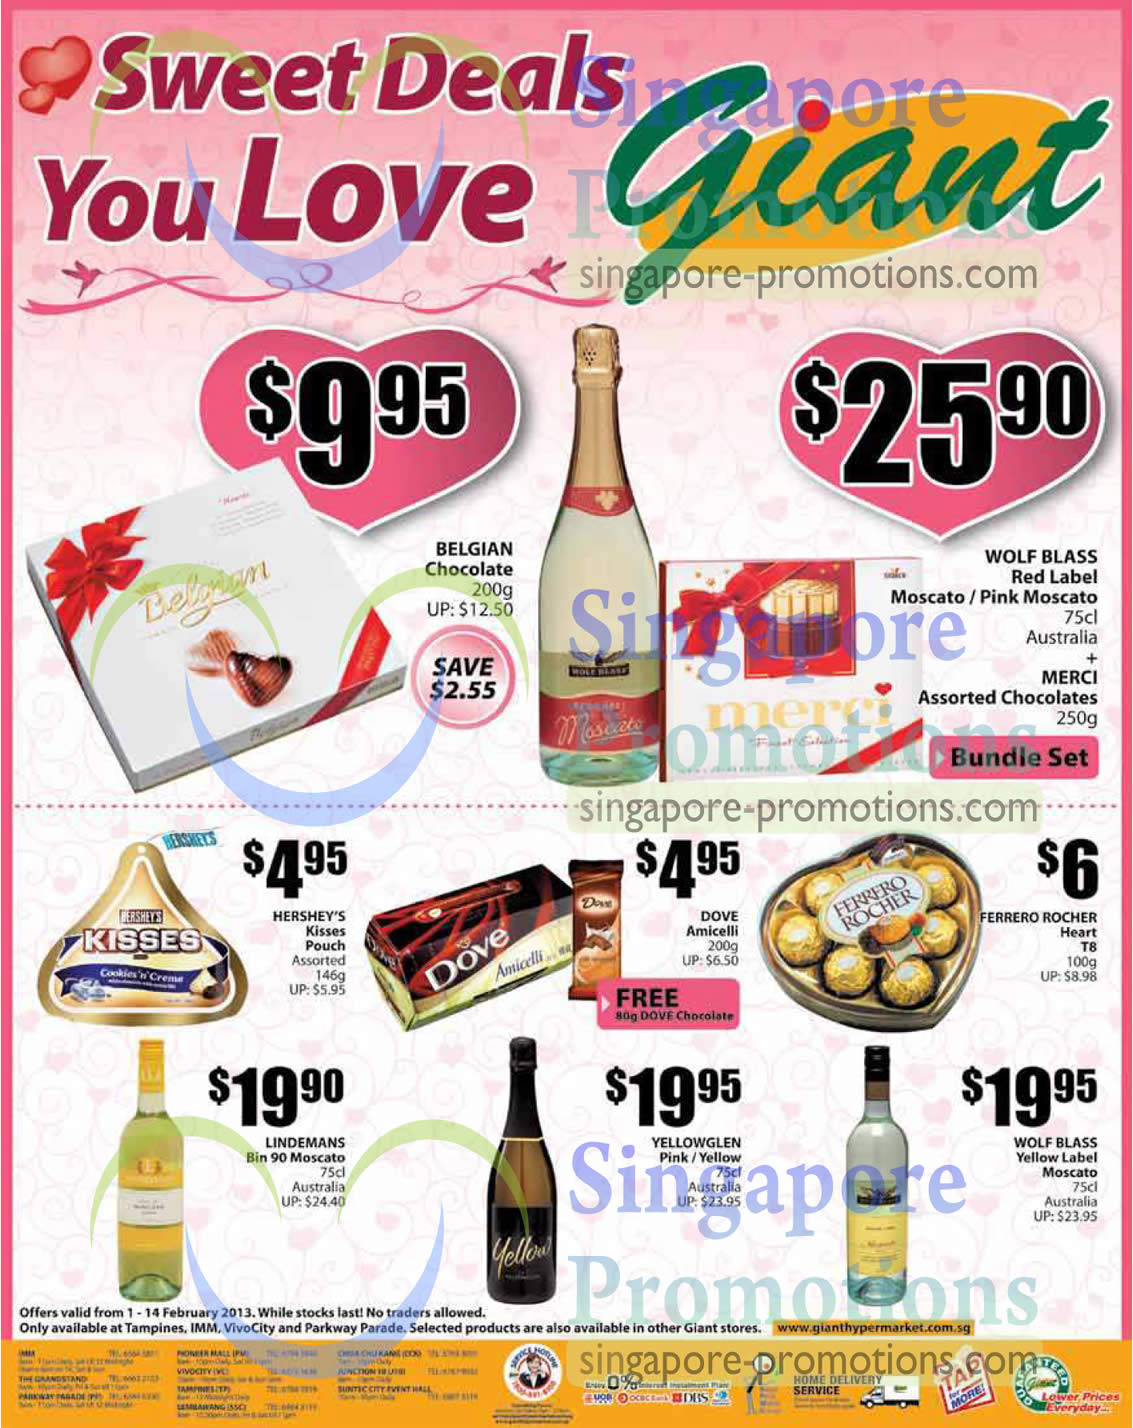 WOLF BLASS Red Label Moscato , WOLF BLASS Red Label Pink Moscato, LINDEMANS Bin 90 Moscato, WOLF BLASS Yellow Label Moscato